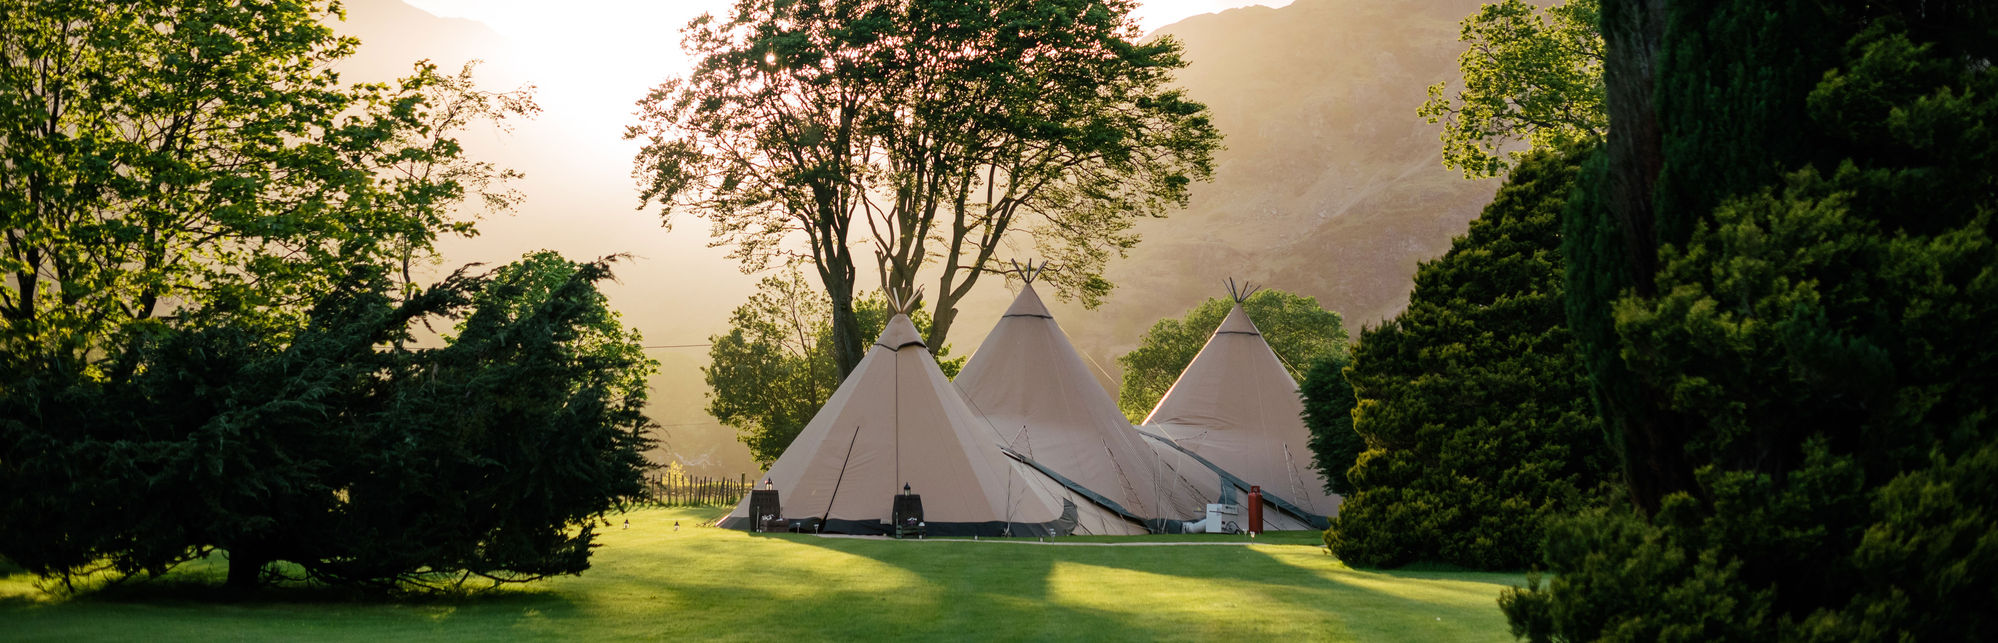 3 tipis in sun light